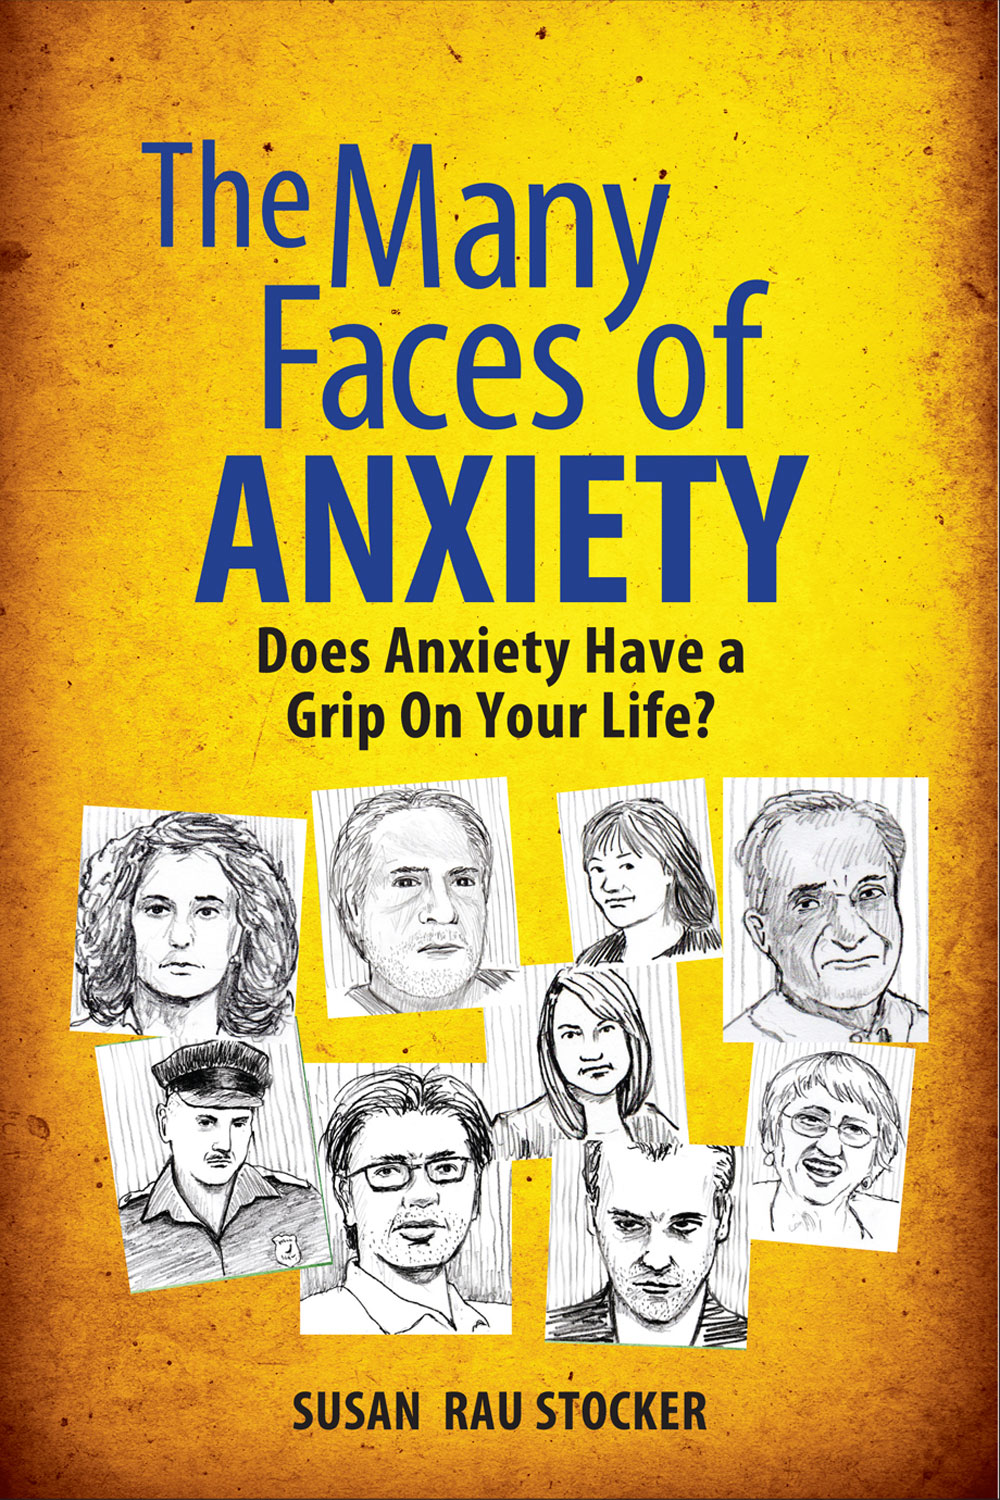 The Many Faces of Anxiety: Does Anxiety Have a Grip On Your Life?